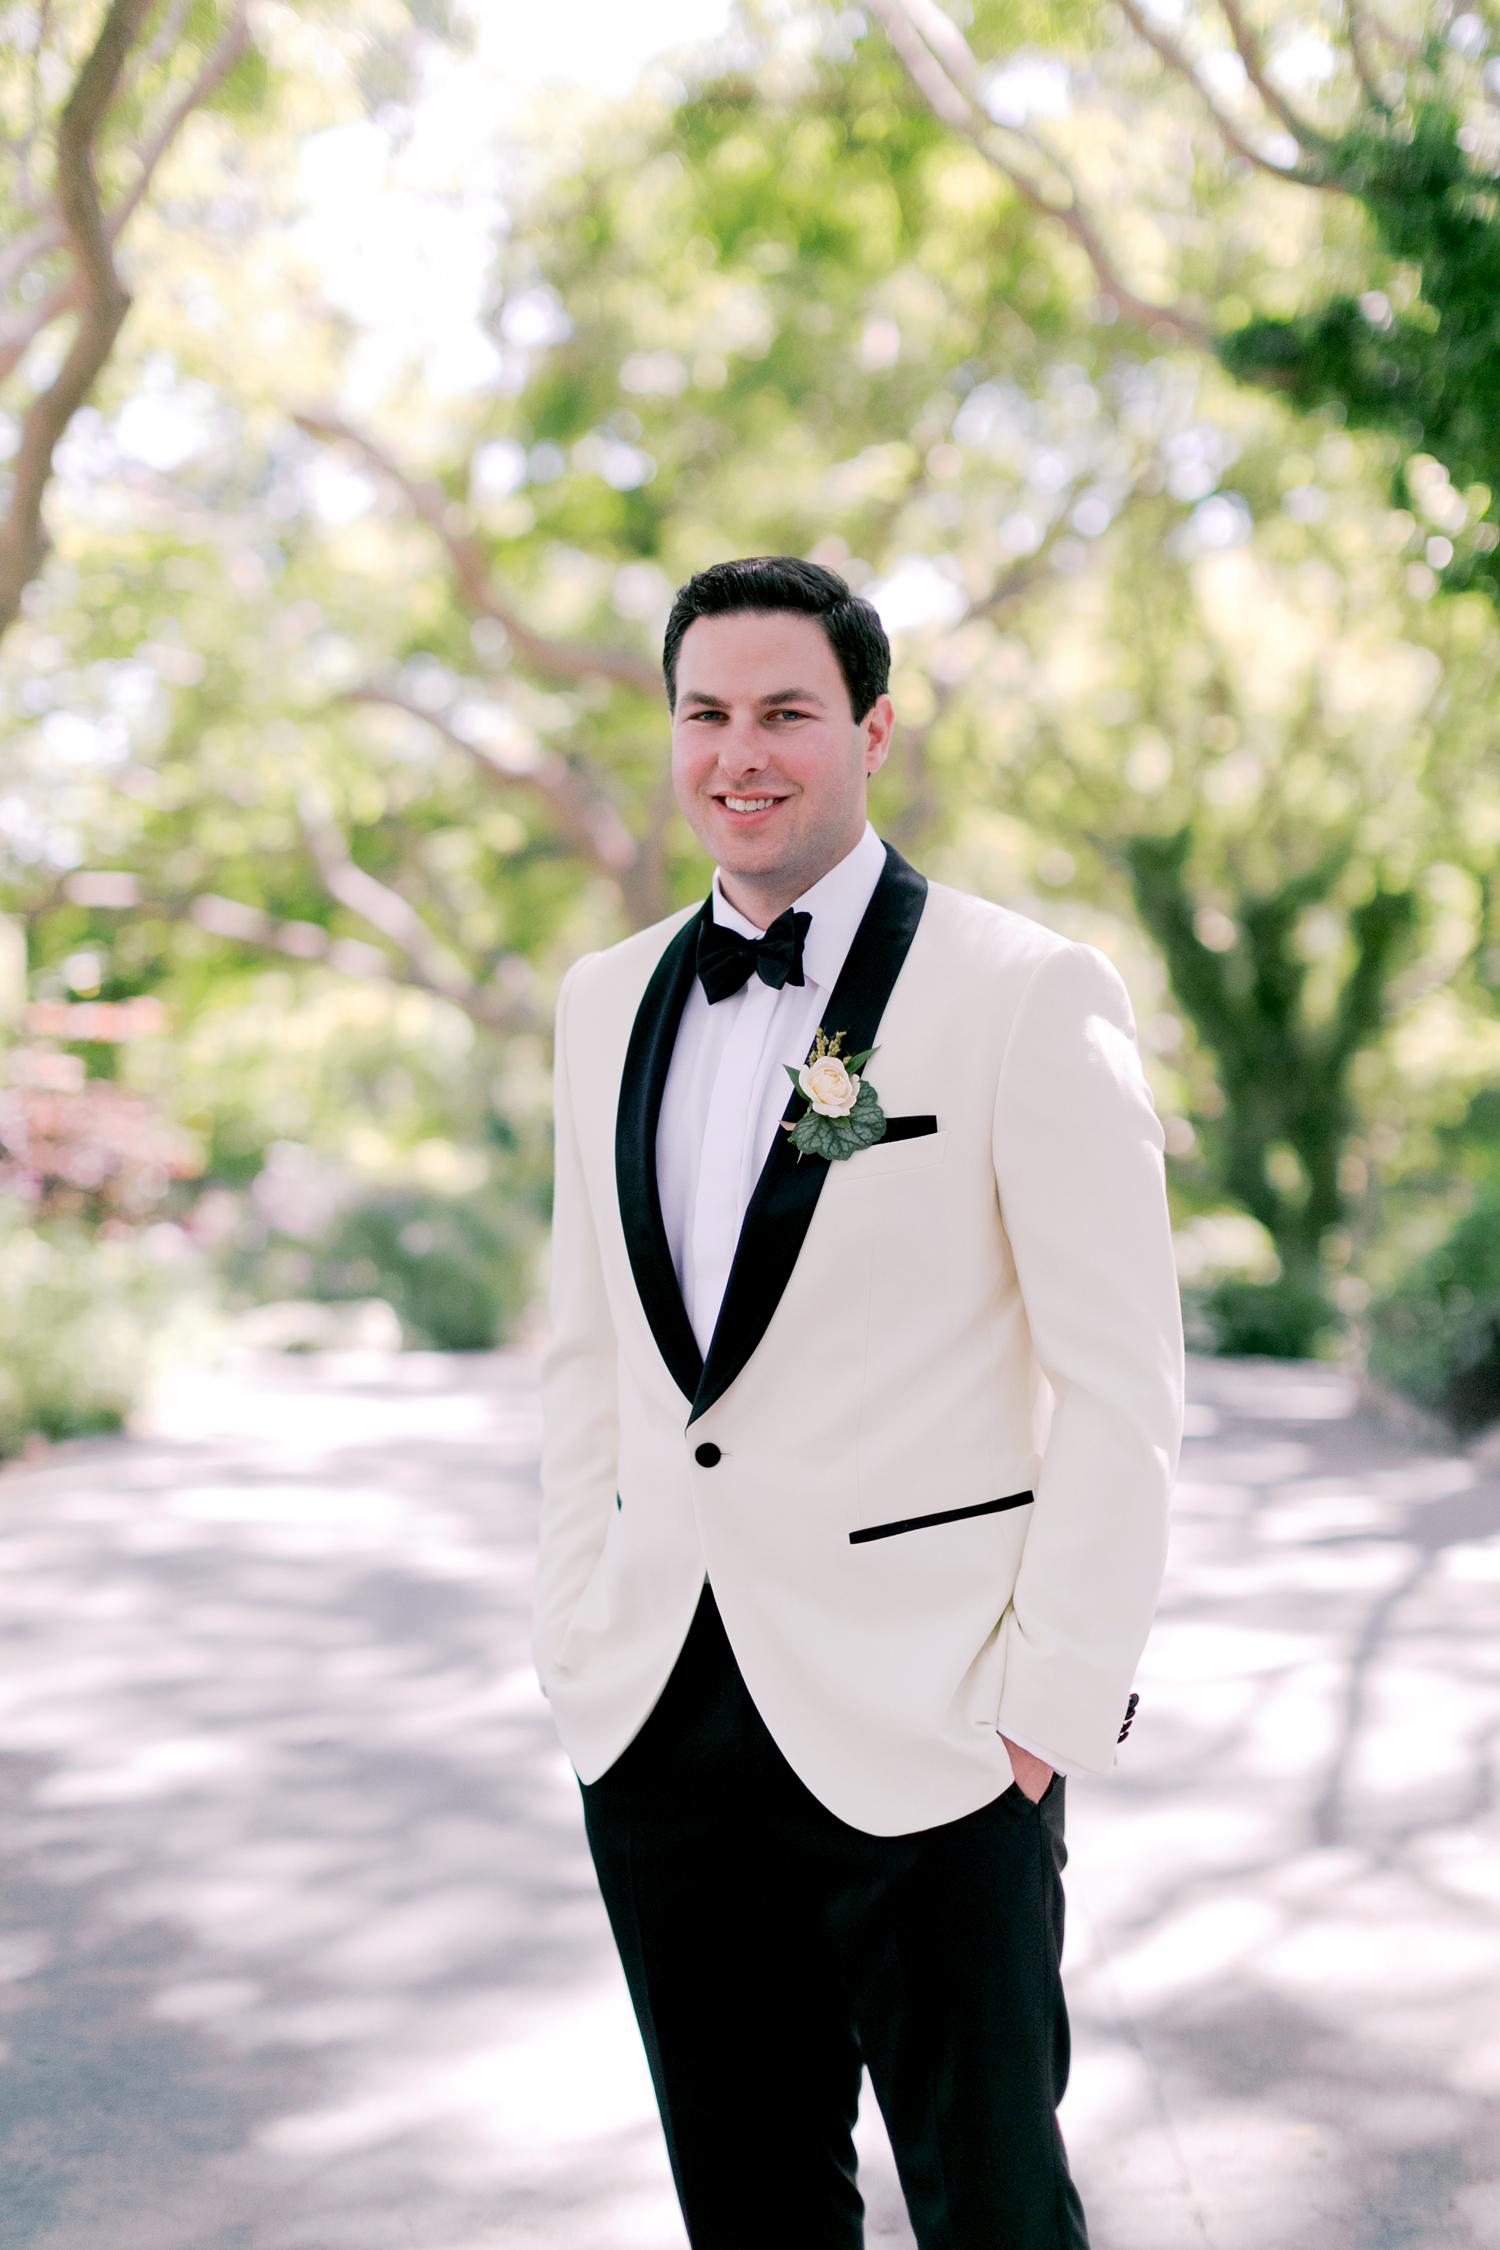 off white jacket black tuxedo pant groom wedding outfit